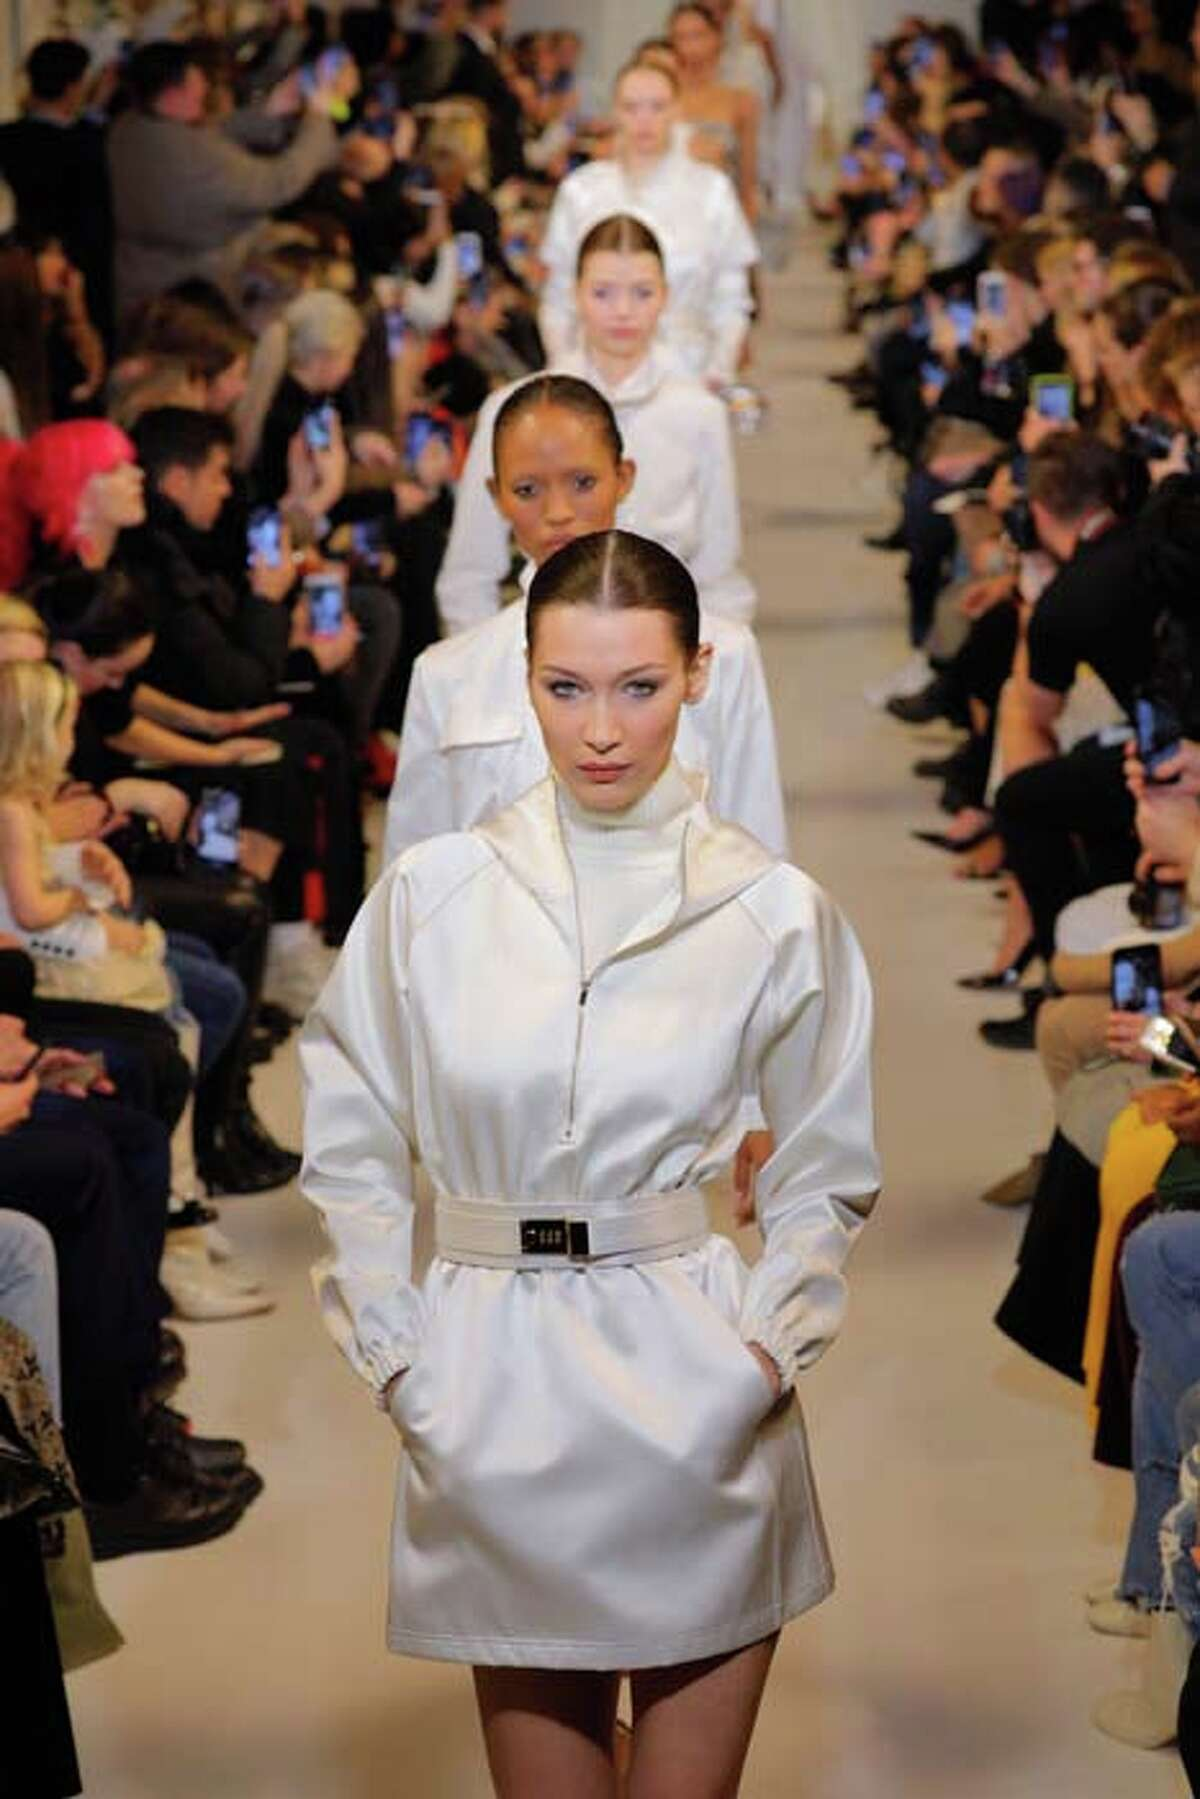 NEW YORK, NY - FEBRUARY 09: Bella Hadid walks the runway finale at the Brandon Maxwell Runway show; February 2019 during New York Fashion Week at Penn Plaza Pavilion on February 9, 2019 in New York City. (Photo by Randy Brooke/WireImage)